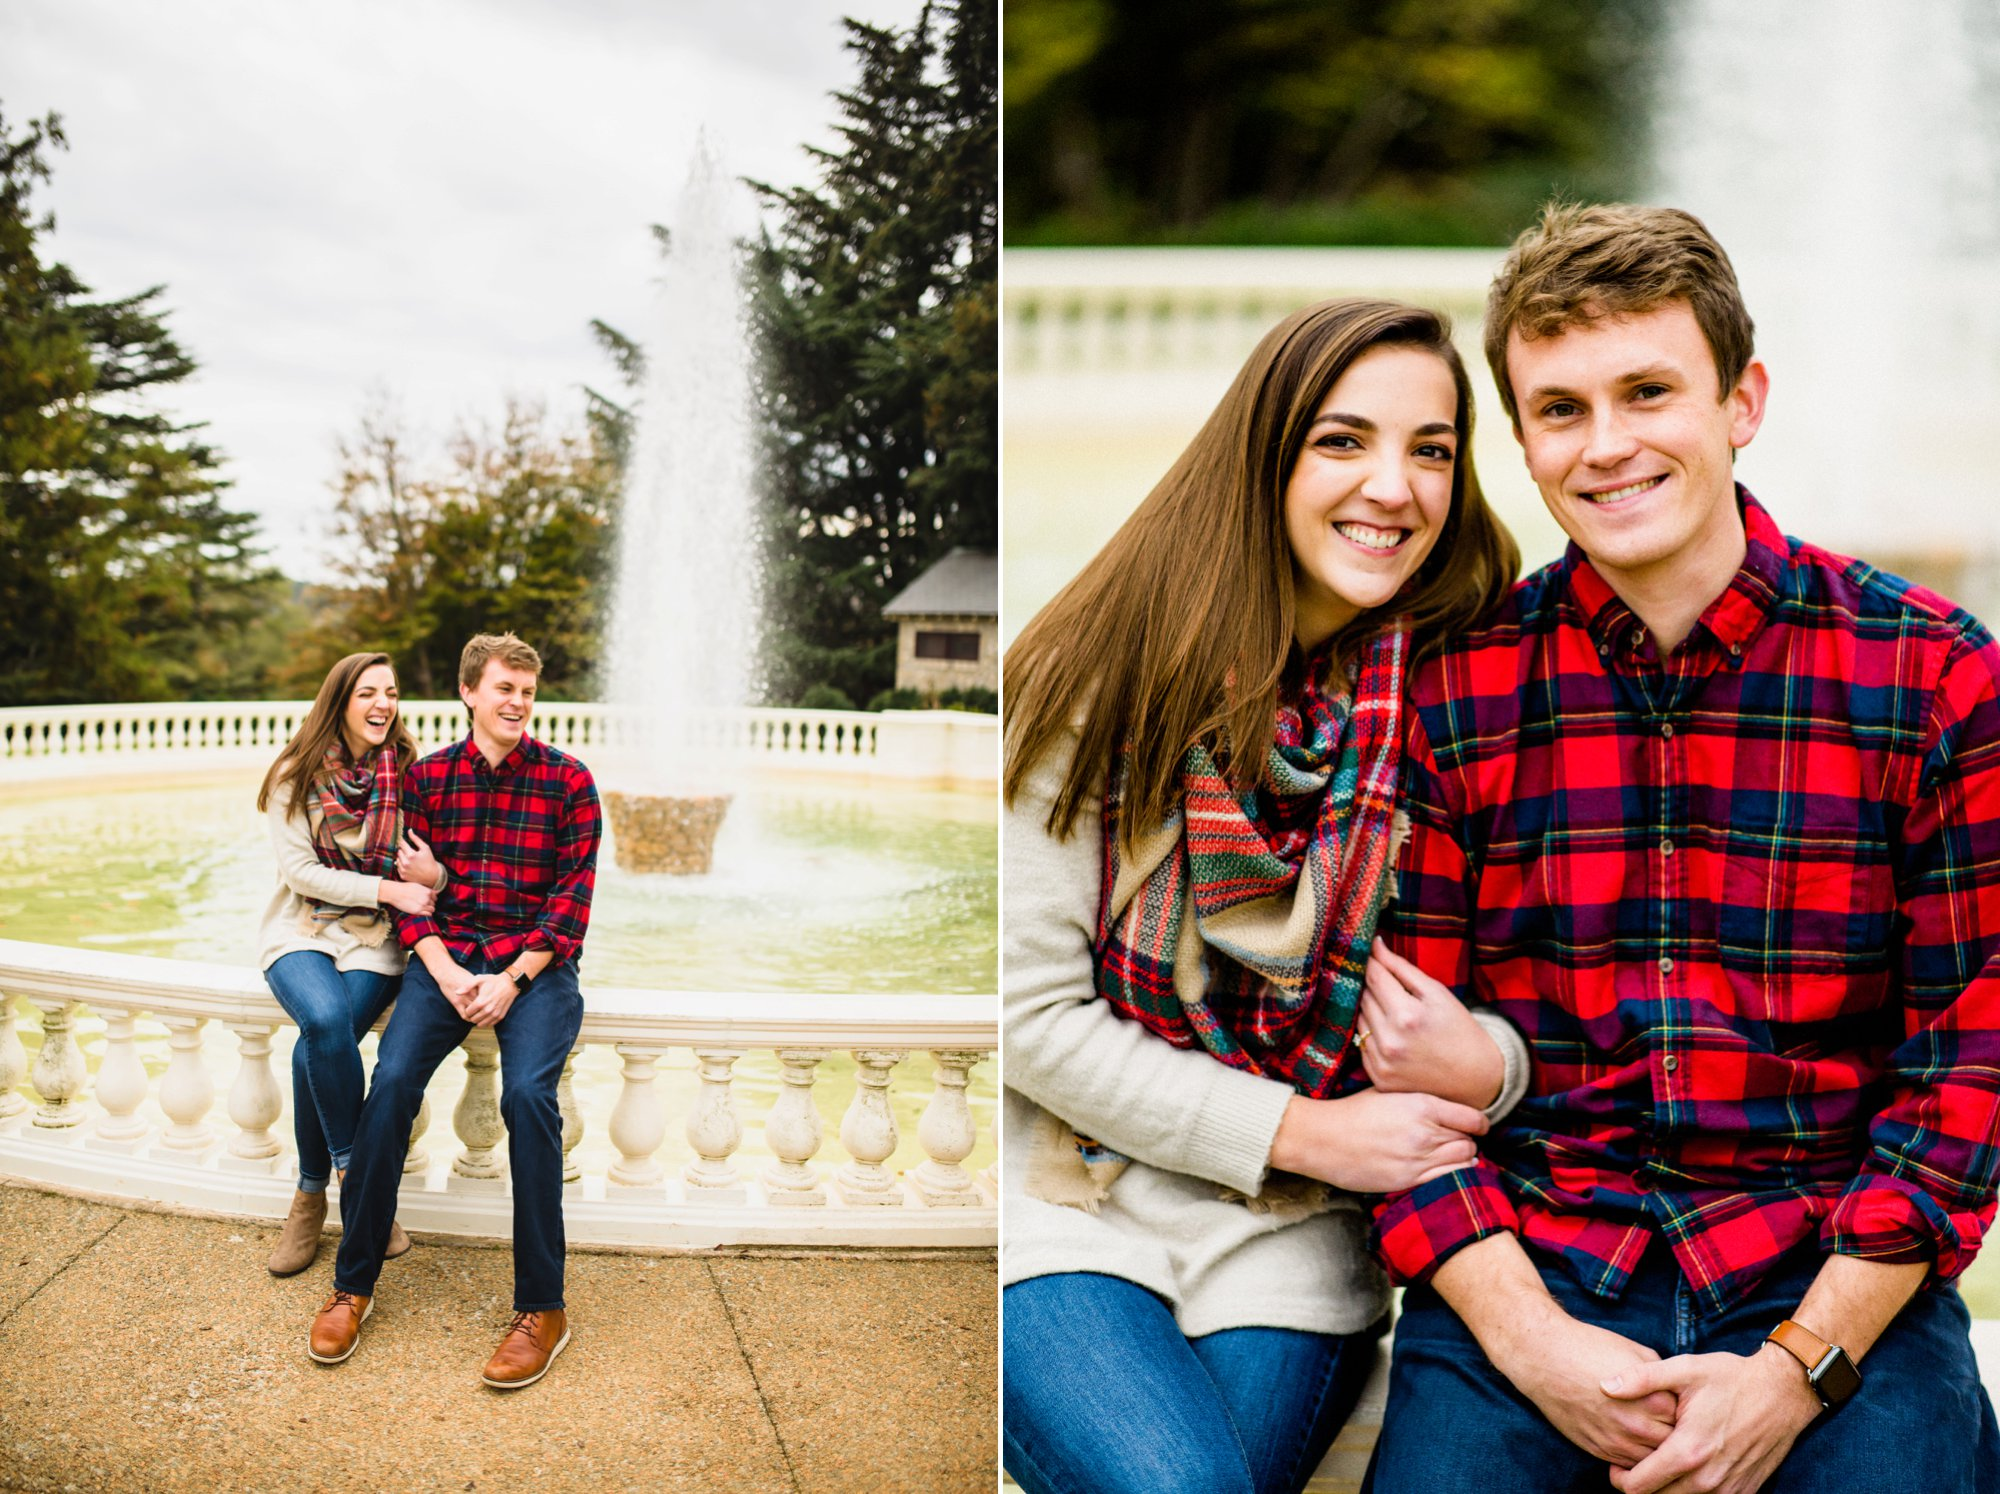 engagement-photography-88-love-stories-19.jpg